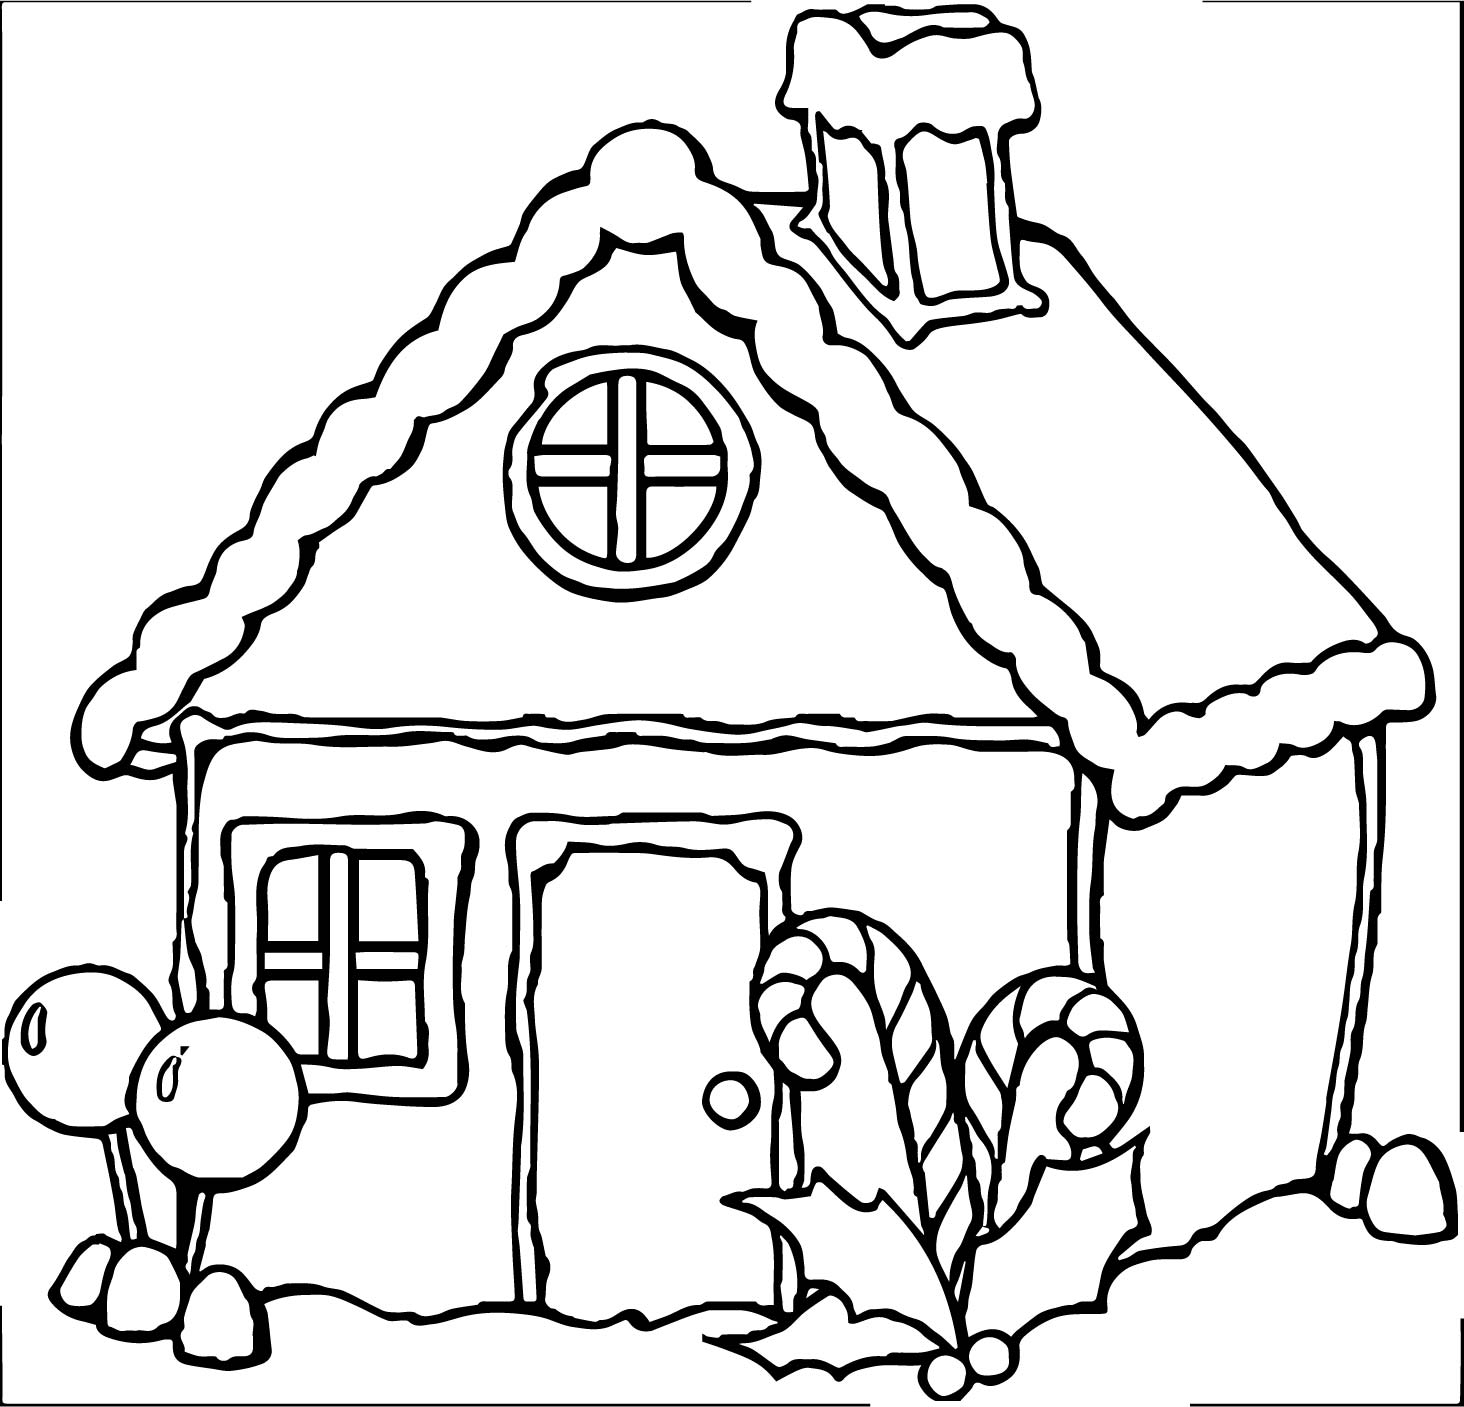 Any gingerbreadhouse coloring page for Gingerbread house coloring pages